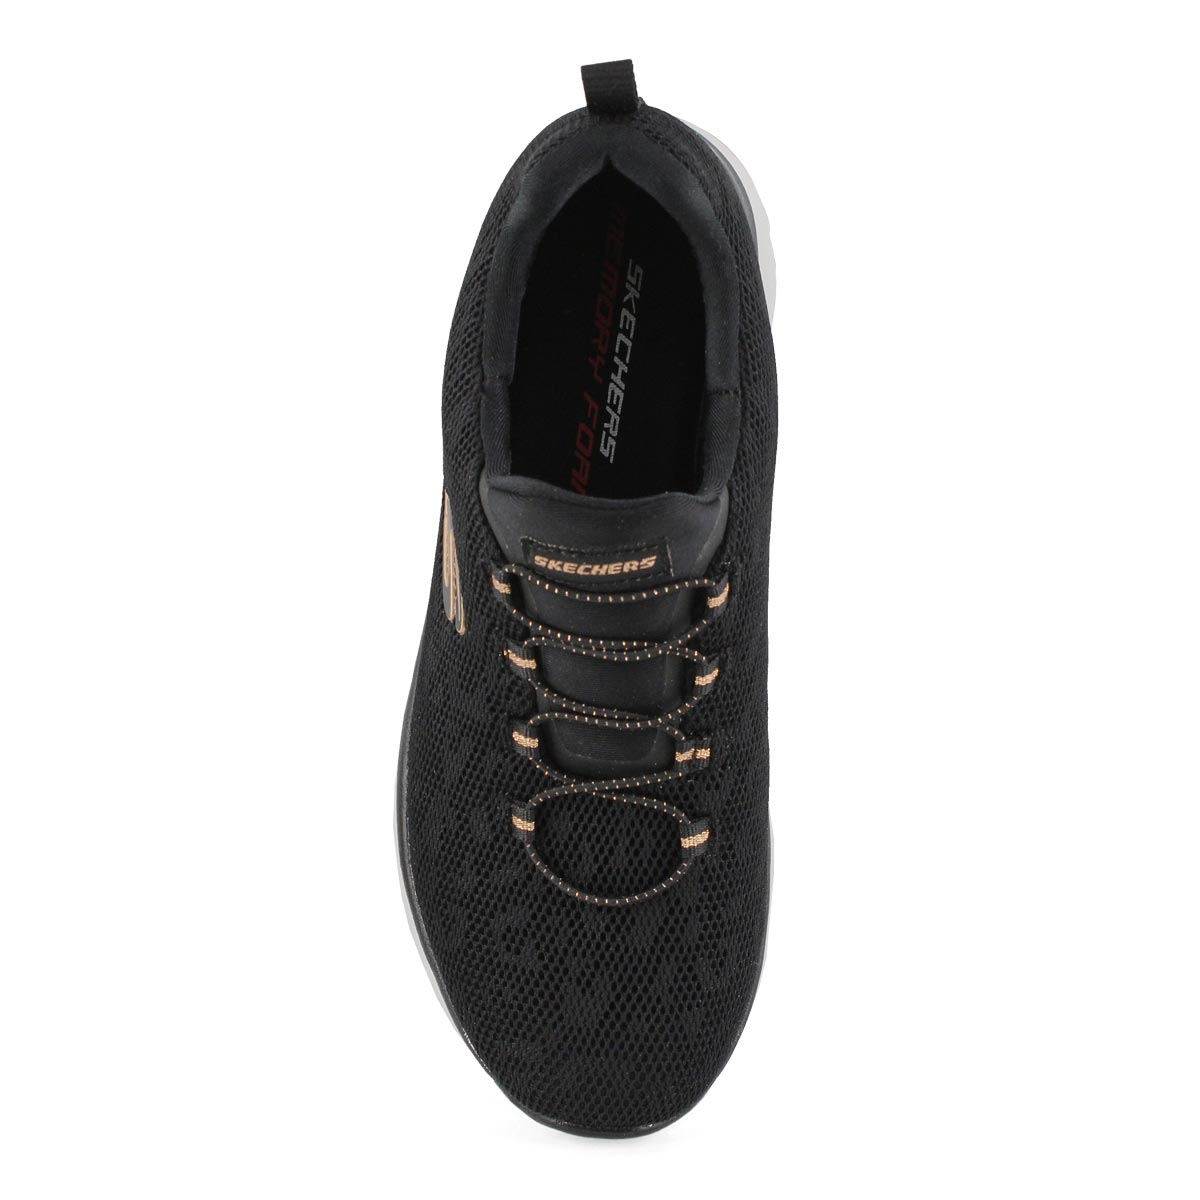 Lds Summits blk/rse gld slip on snkr